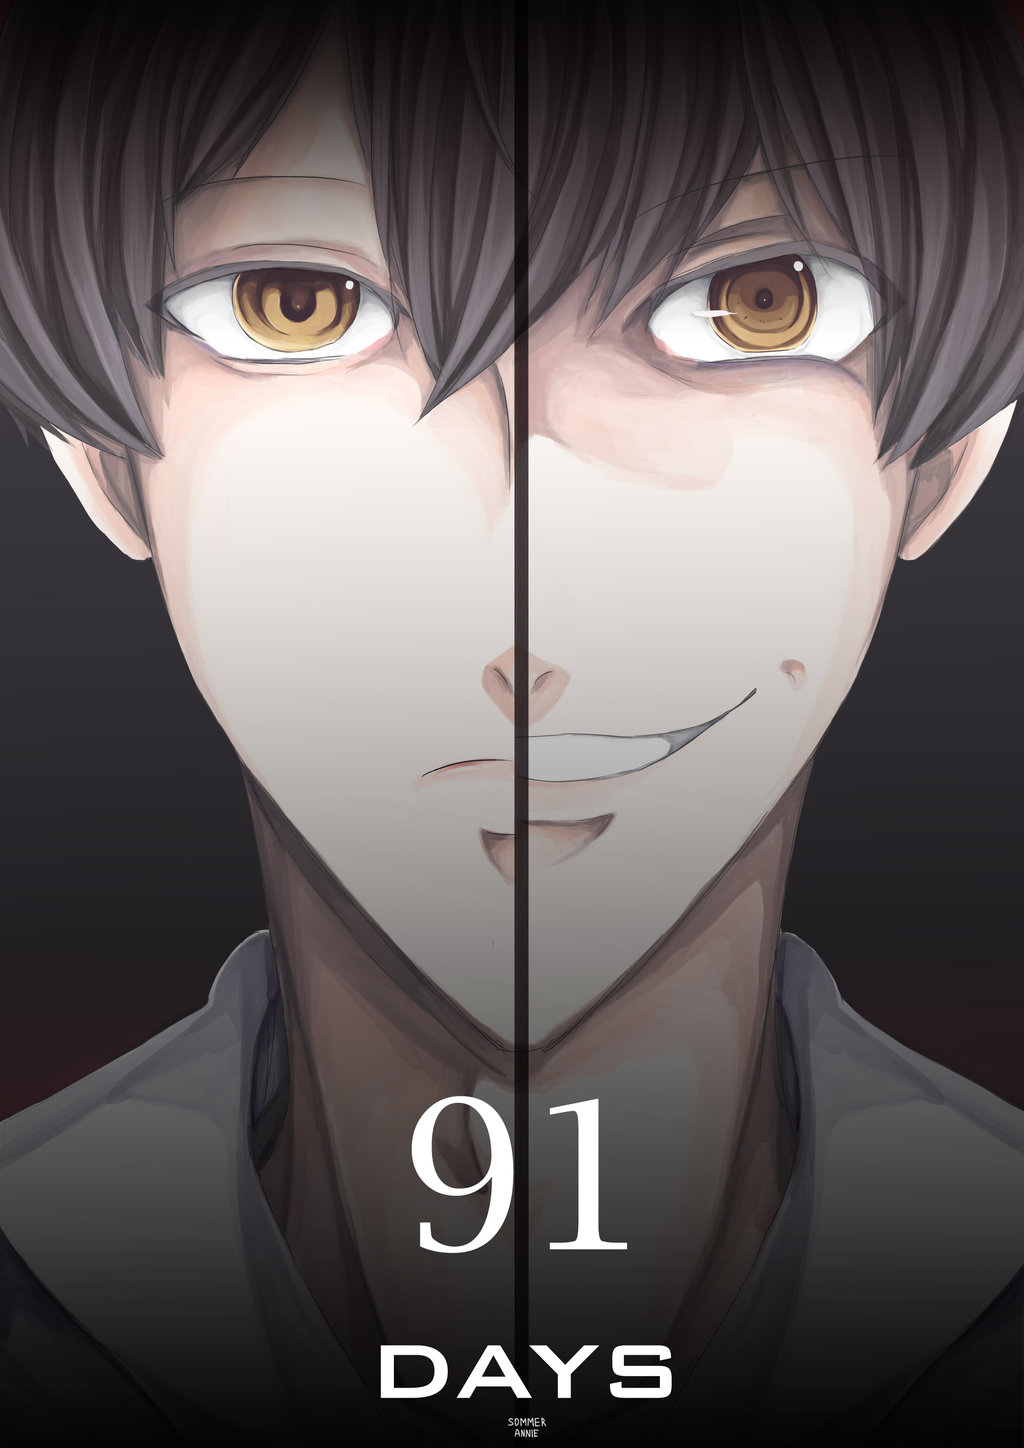 91 Days Wallpapers Anime Hq 91 Days Pictures 4k Wallpapers